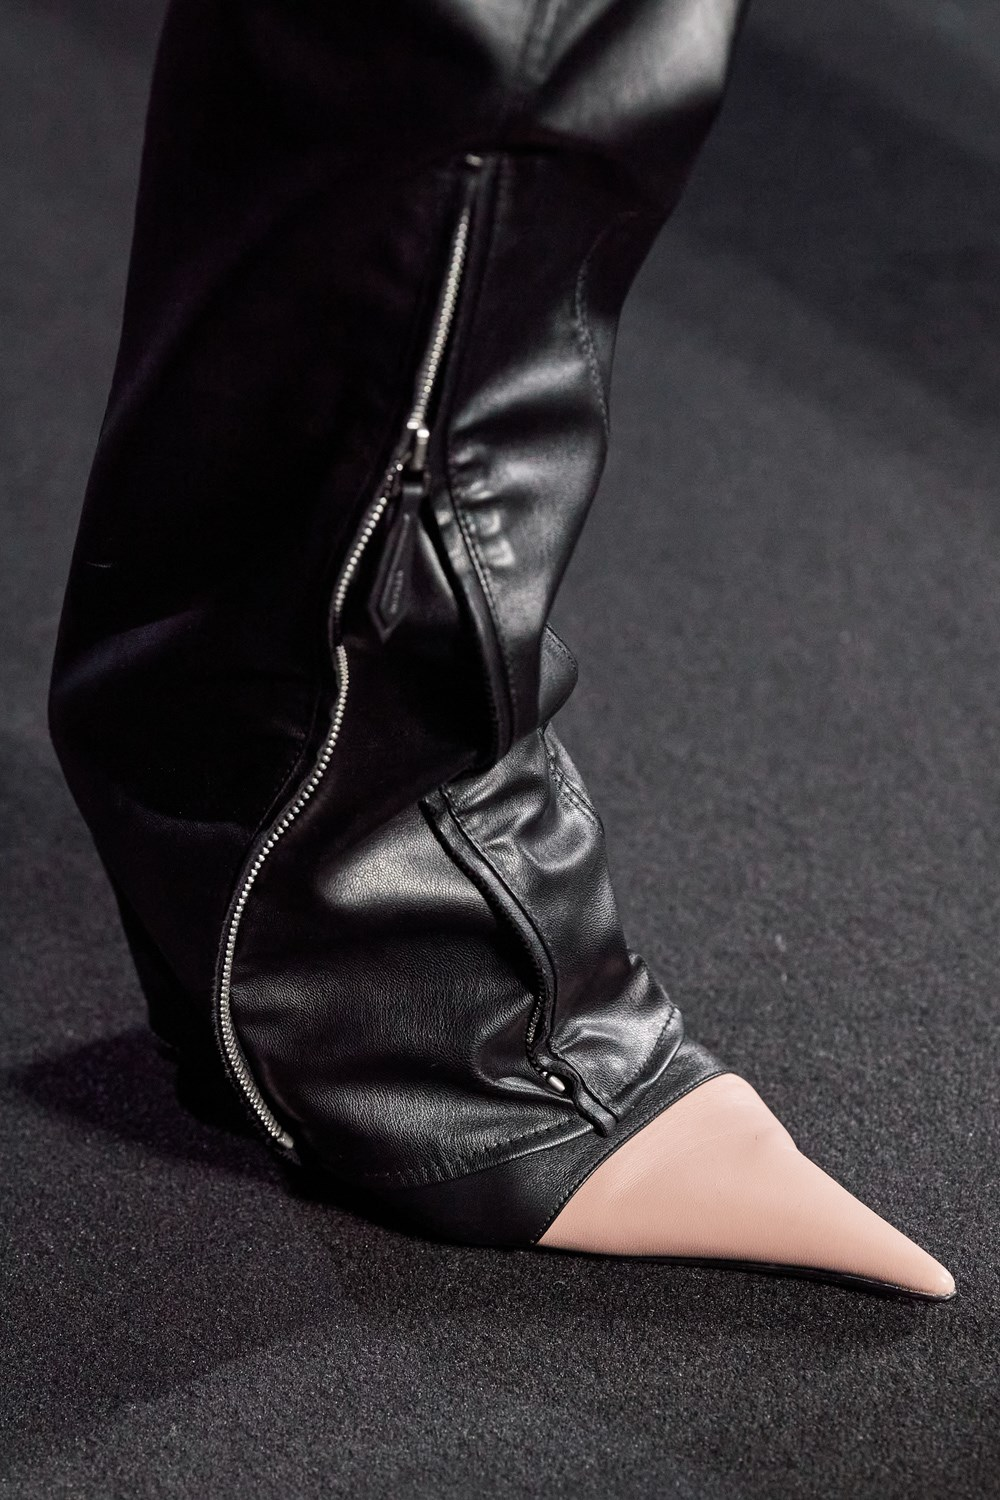 Mugler Runway Details Bottom Zip Leather Trousers in Black Leather Pointed Toe Heels in Peach Fall 20 RTW